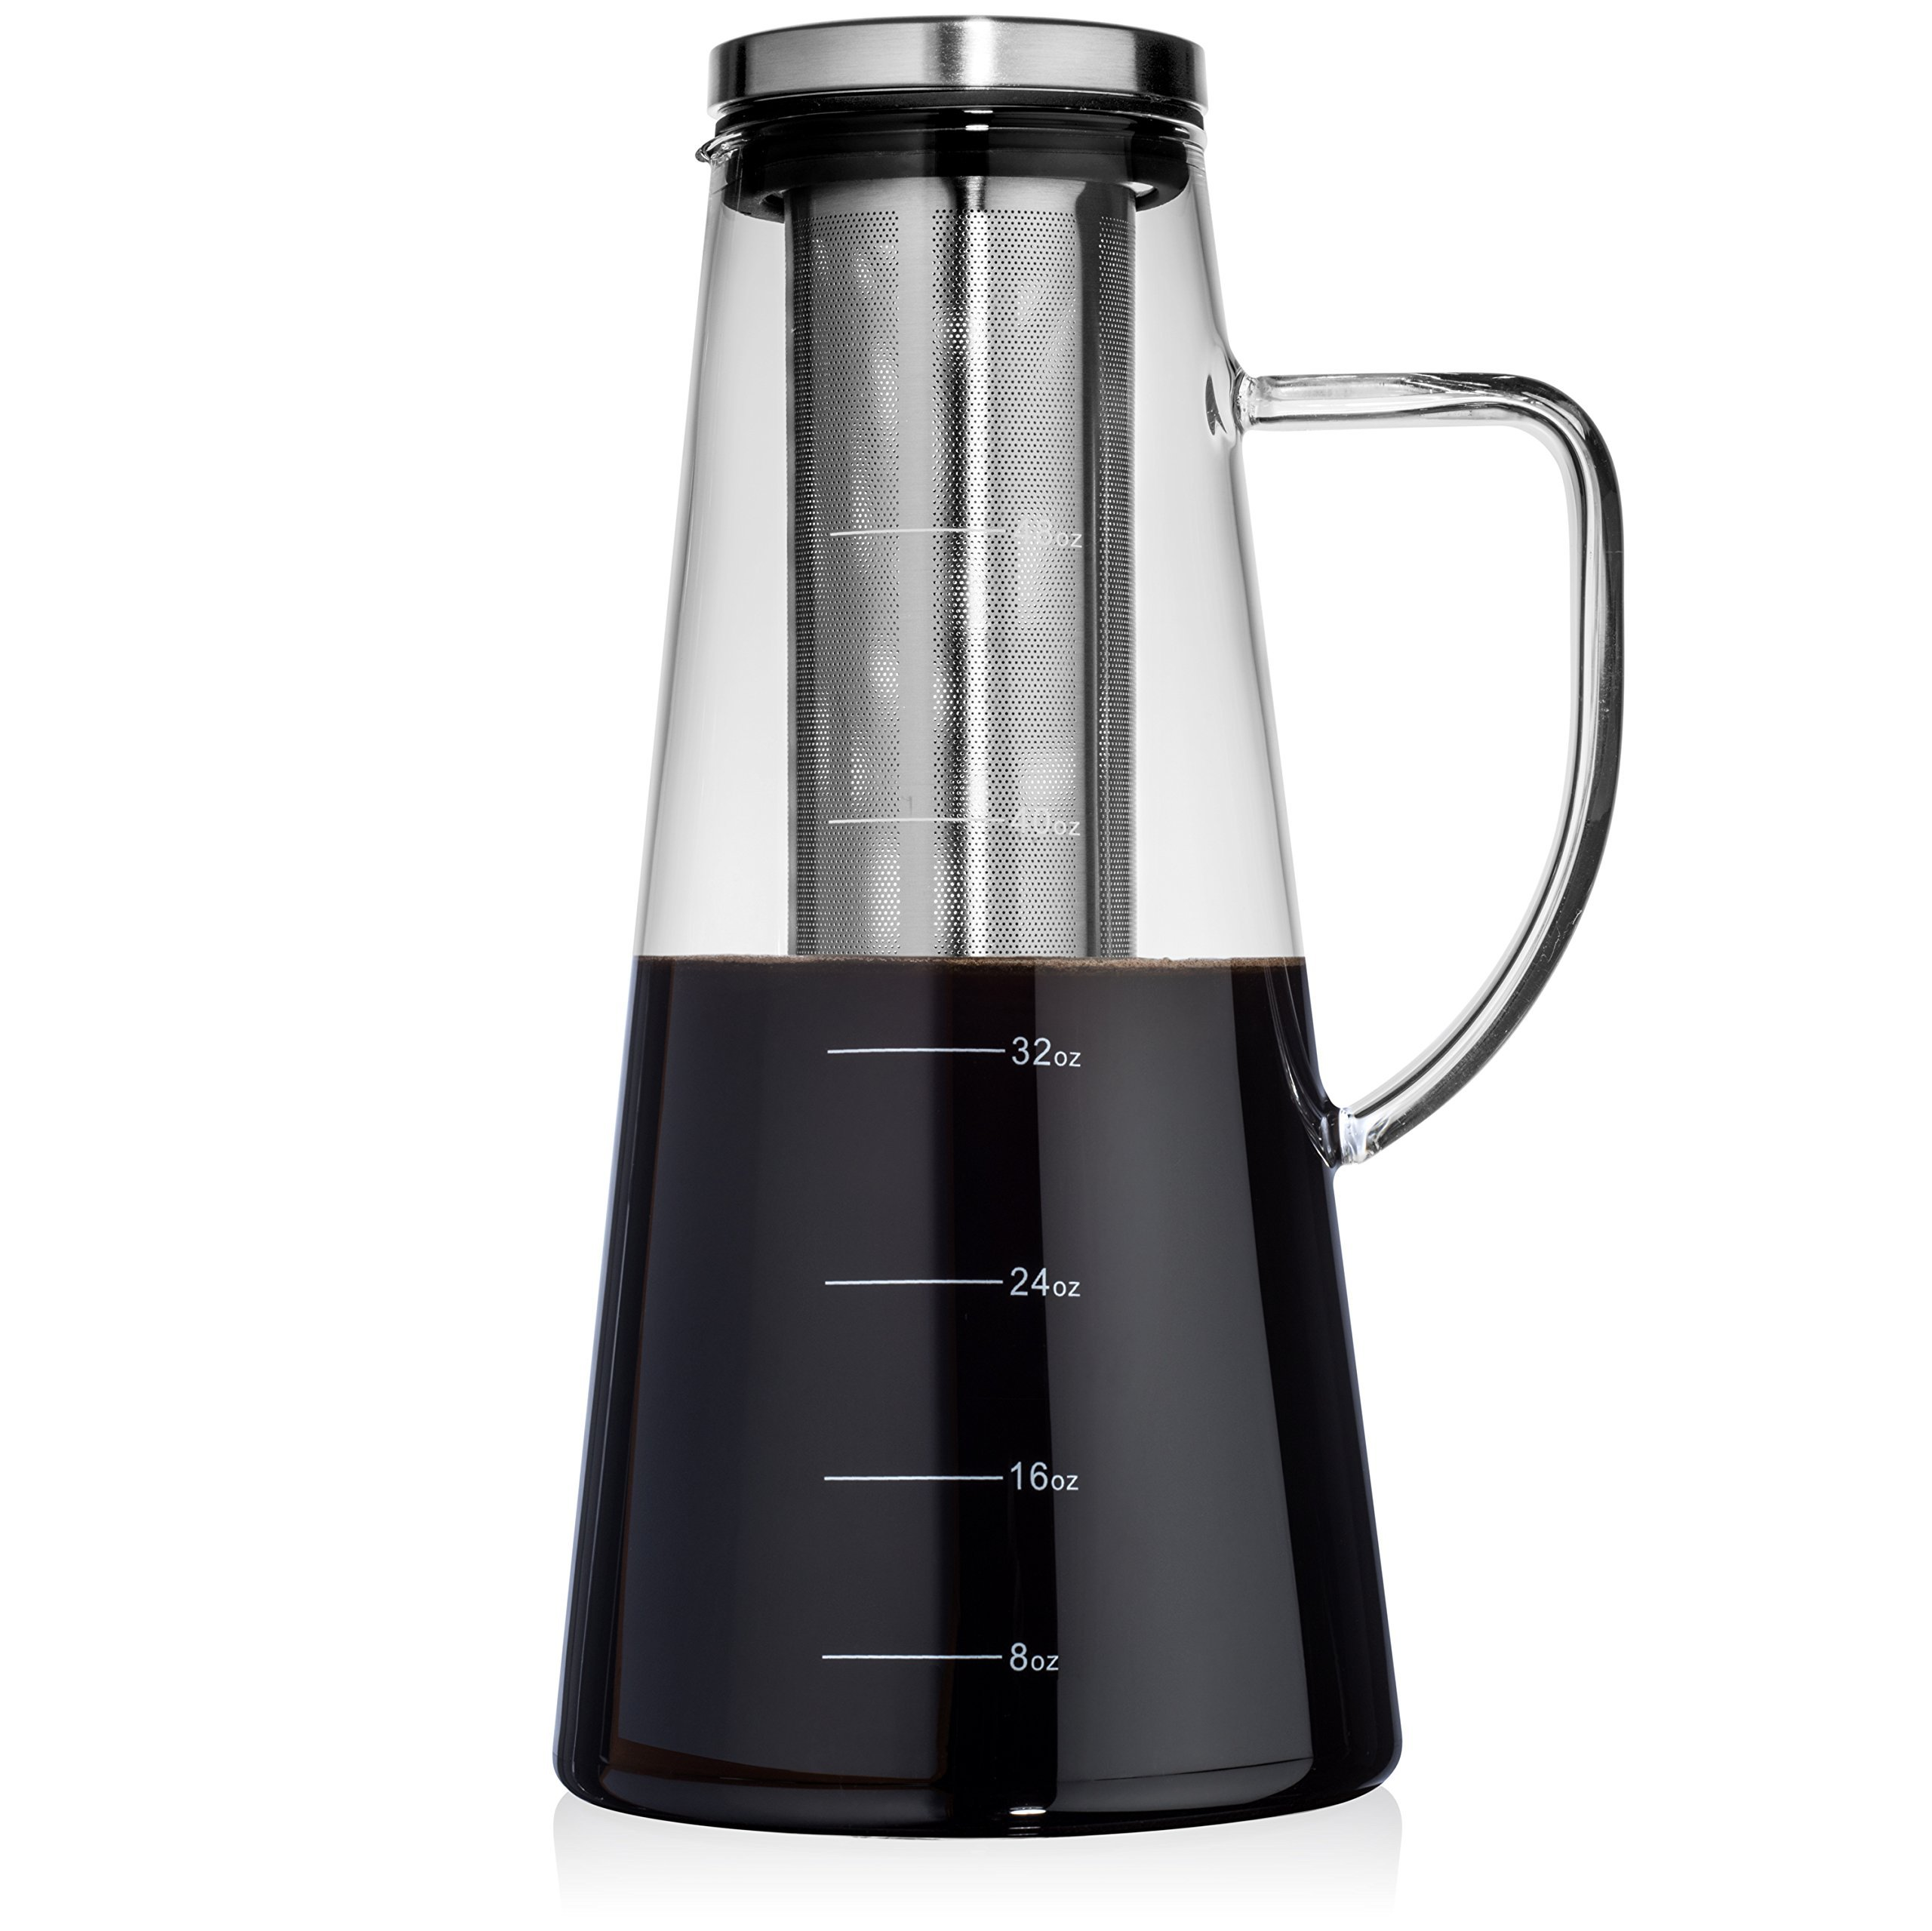 Large Cold Brew Coffee Maker, 1.5L/48oz Premium Quality Glass Carafe with Airtight Stainless Steel Lid Brews Hot or Iced Coffee & Tea, Removable Fine Mesh Filter/Fruit Infuser, Bonus Cleaning Sponge